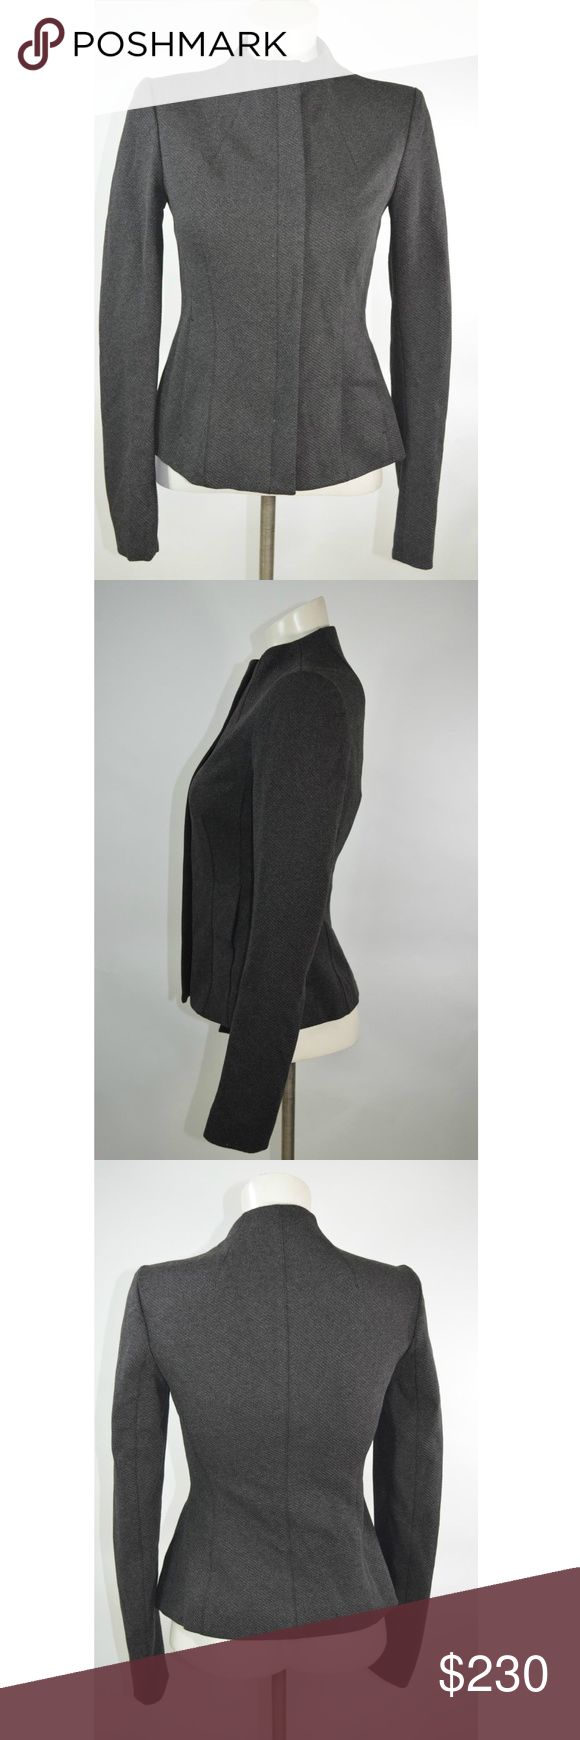 3287340450 Theory Jacket in Dark Grey Size Small S NEW Theory Knit Twill Sculpted  Jacket in Dark